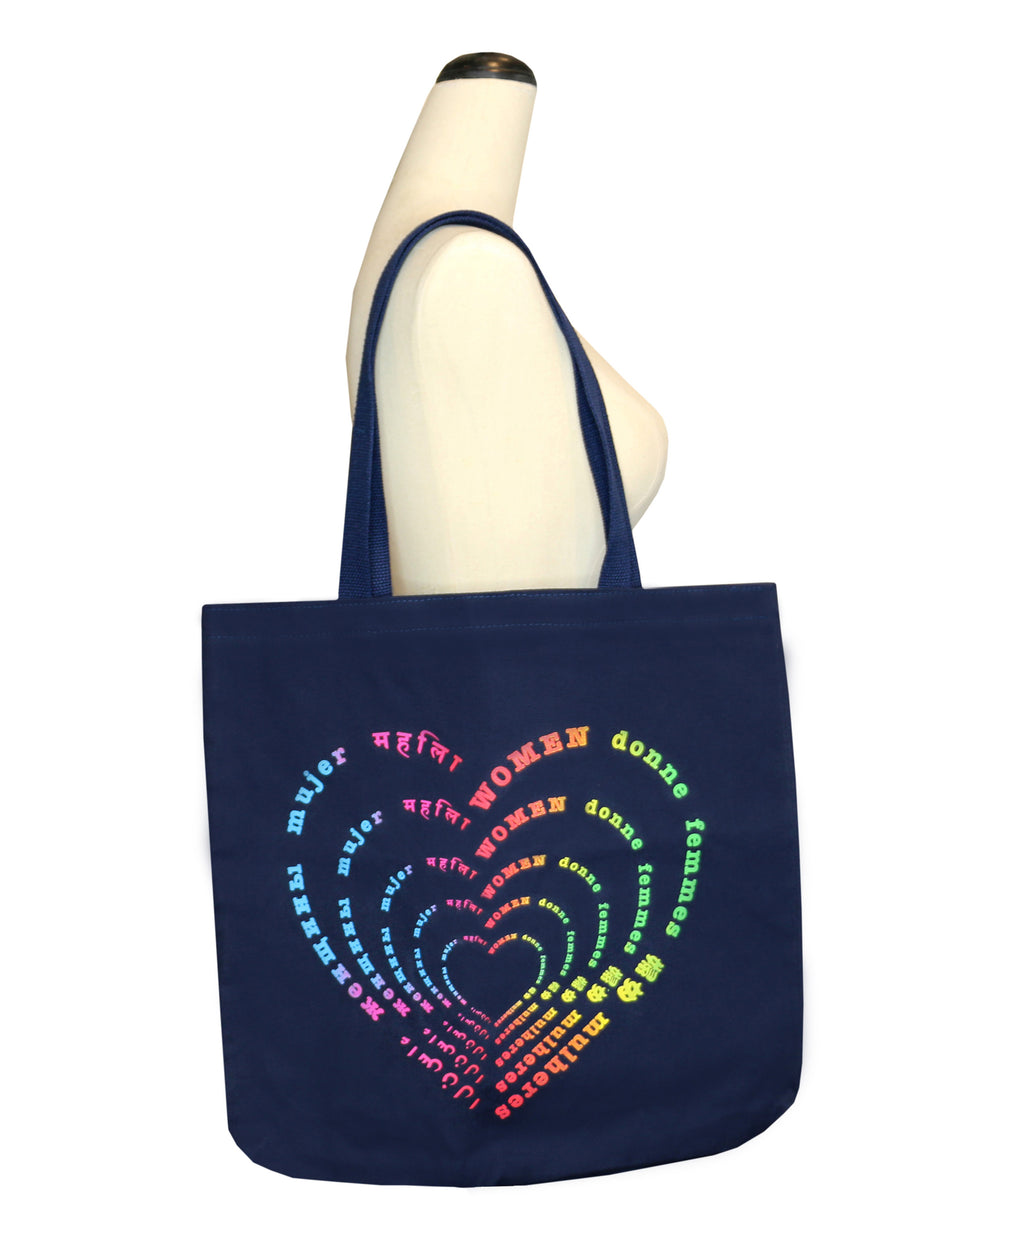 Rainbow Women Tote - Supports World Of Children | Rainbow Women Tote - Supports World Of Children